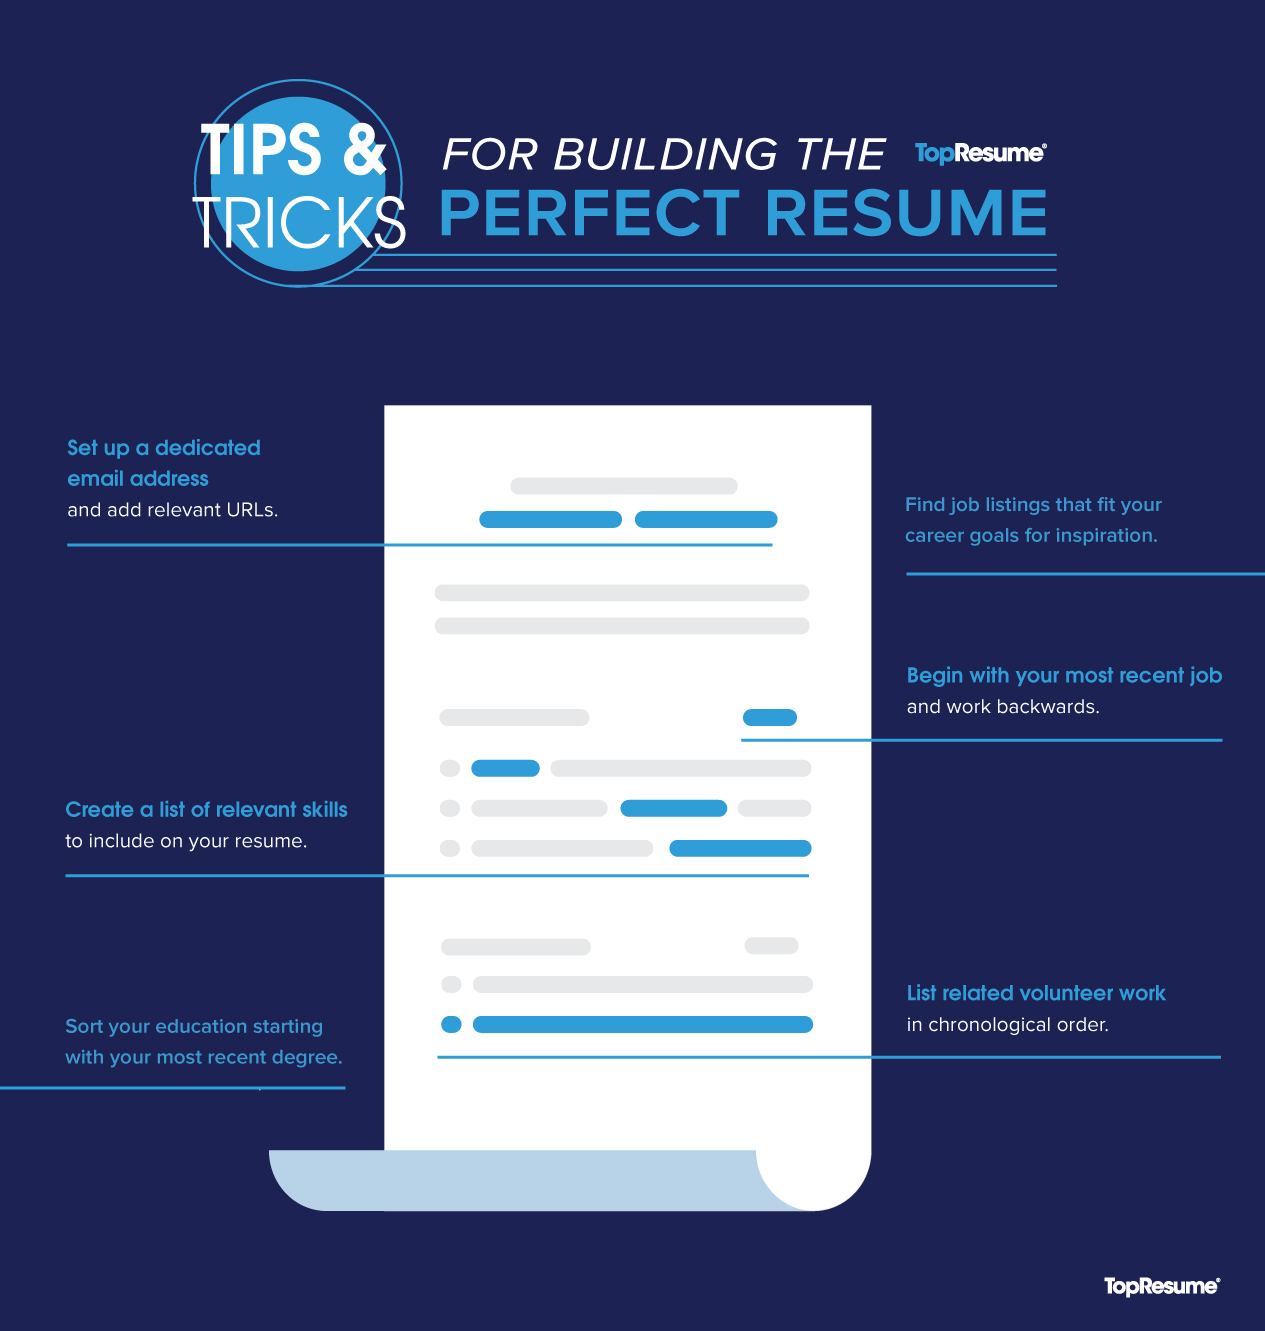 steps to writing the perfect resume topresume tips for creating best possible Resume Tips For Creating The Best Possible Resume